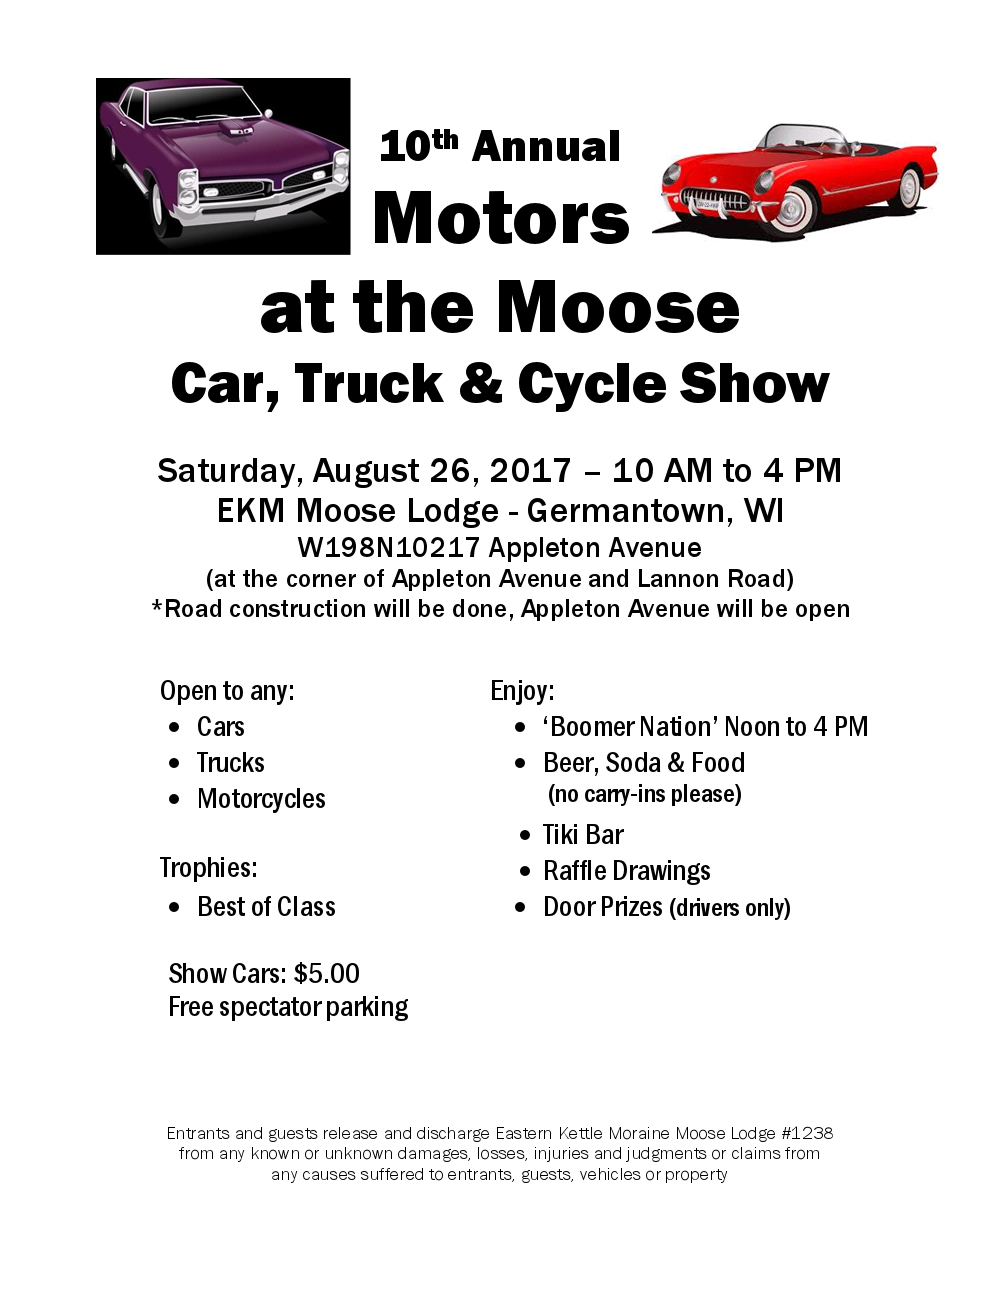 EKM Motors at the Moose